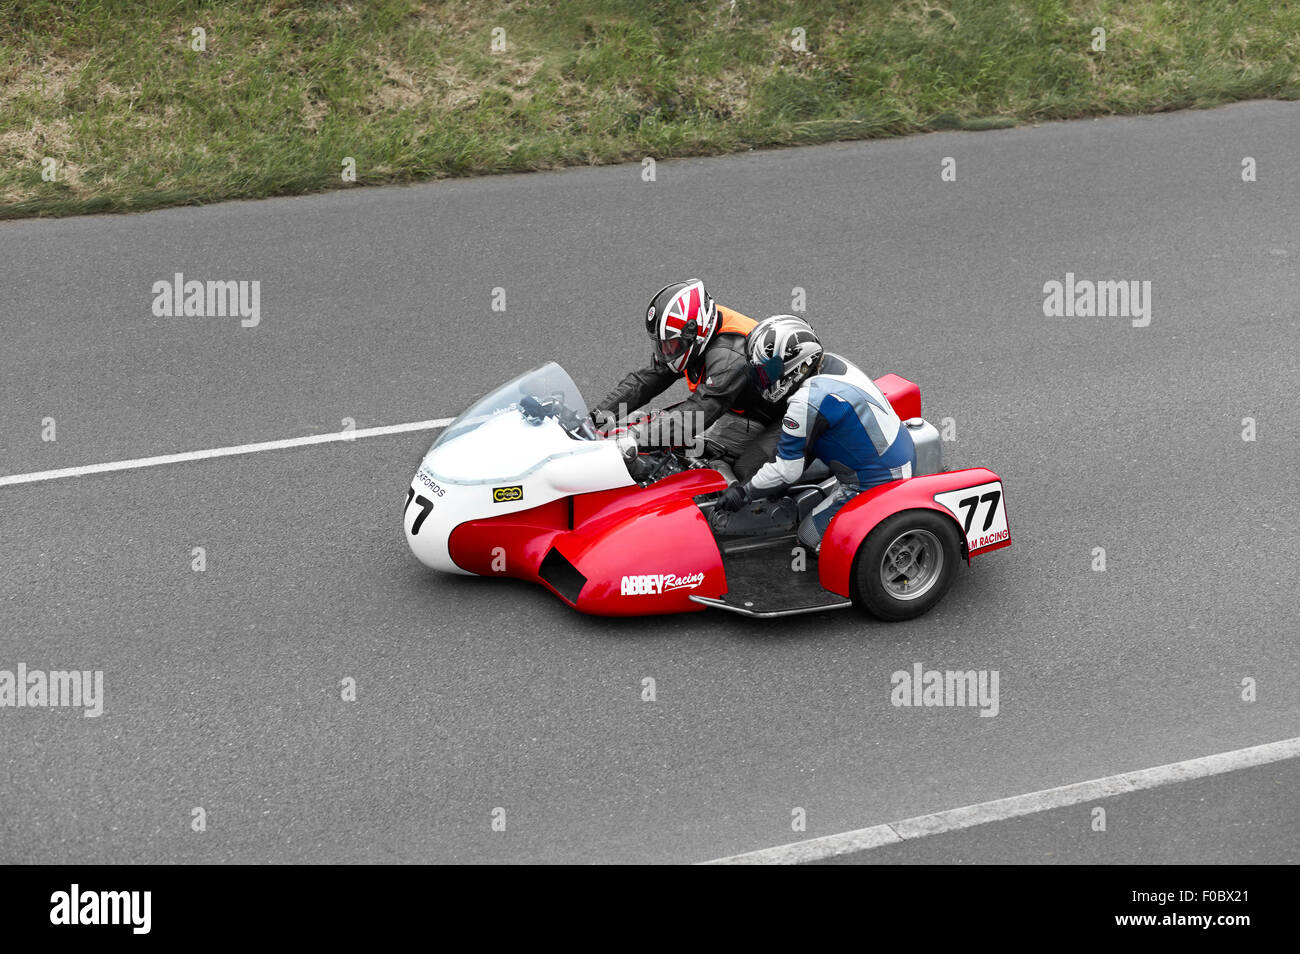 Steve Brooks on no77 sidecar at the 2015 Southern 100 races - Stock Image